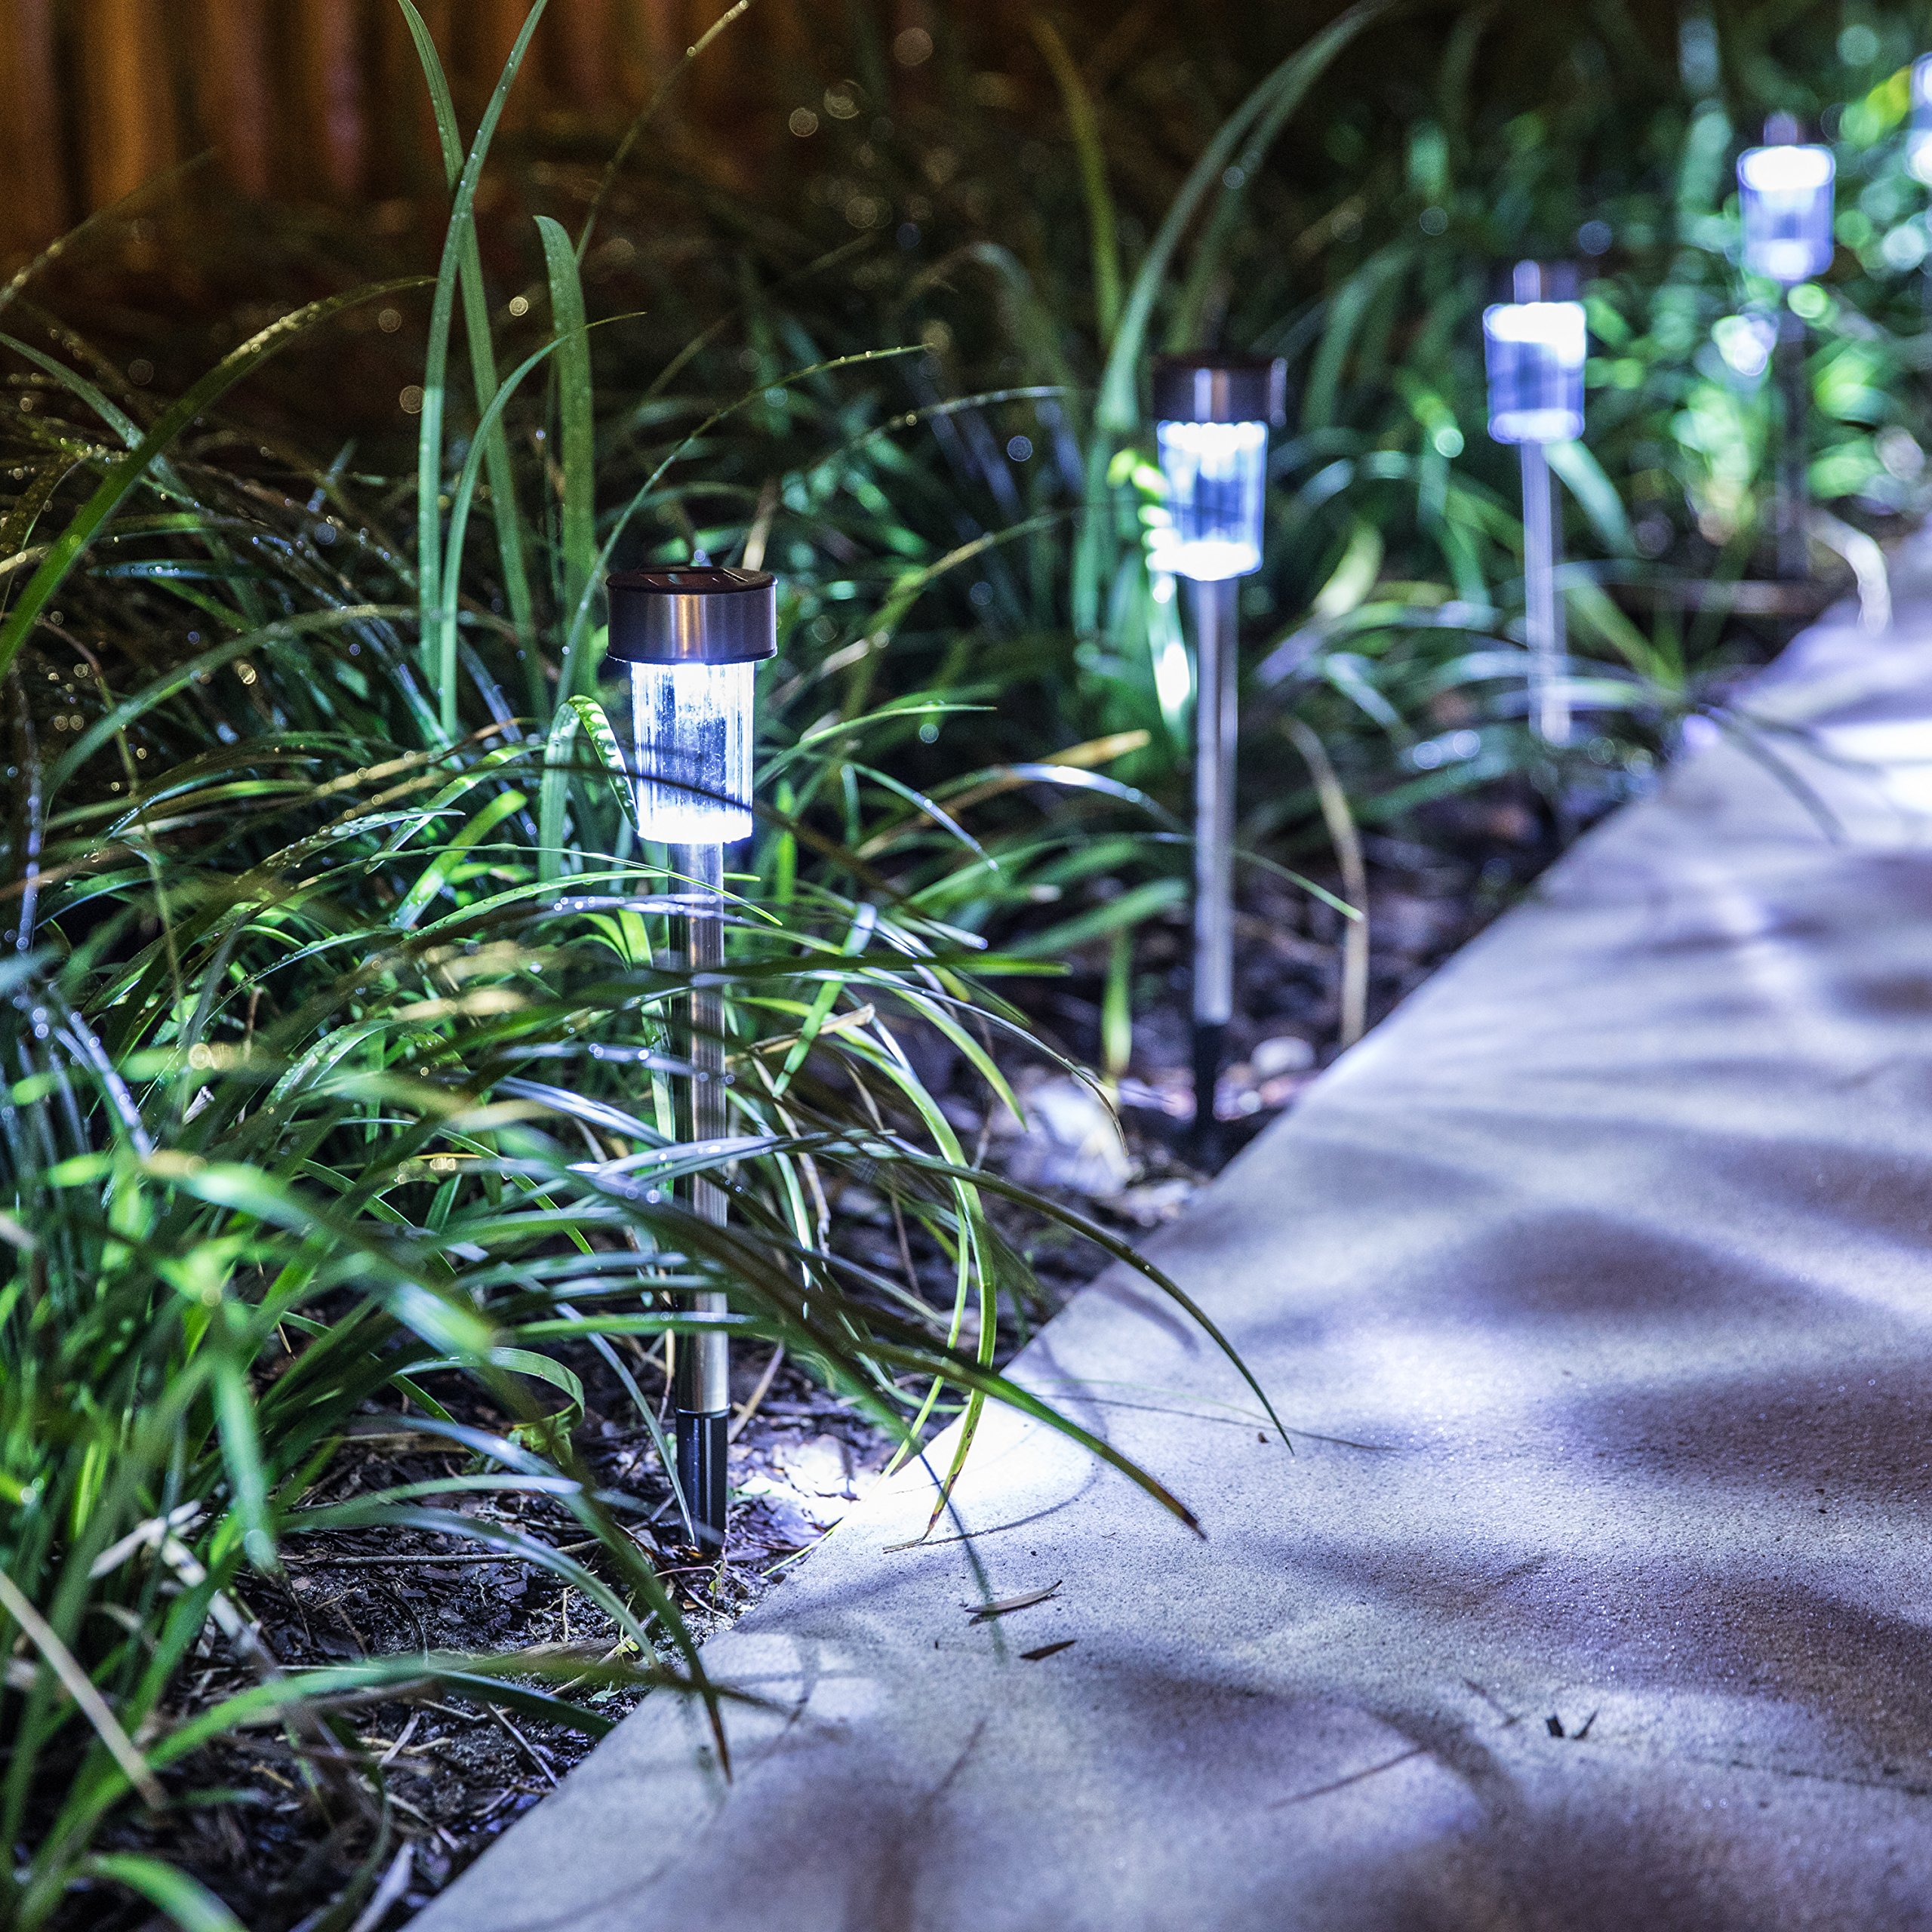 Logical Luxury Decorative Outdoor Solar Garden Lights (10 Pack) enhances Pathways driveways patios and gazebos; Classic Simple Stainless Steel Design; Soft White LED Powered; Water/Weatherproof by Logical Luxury (Image #5)